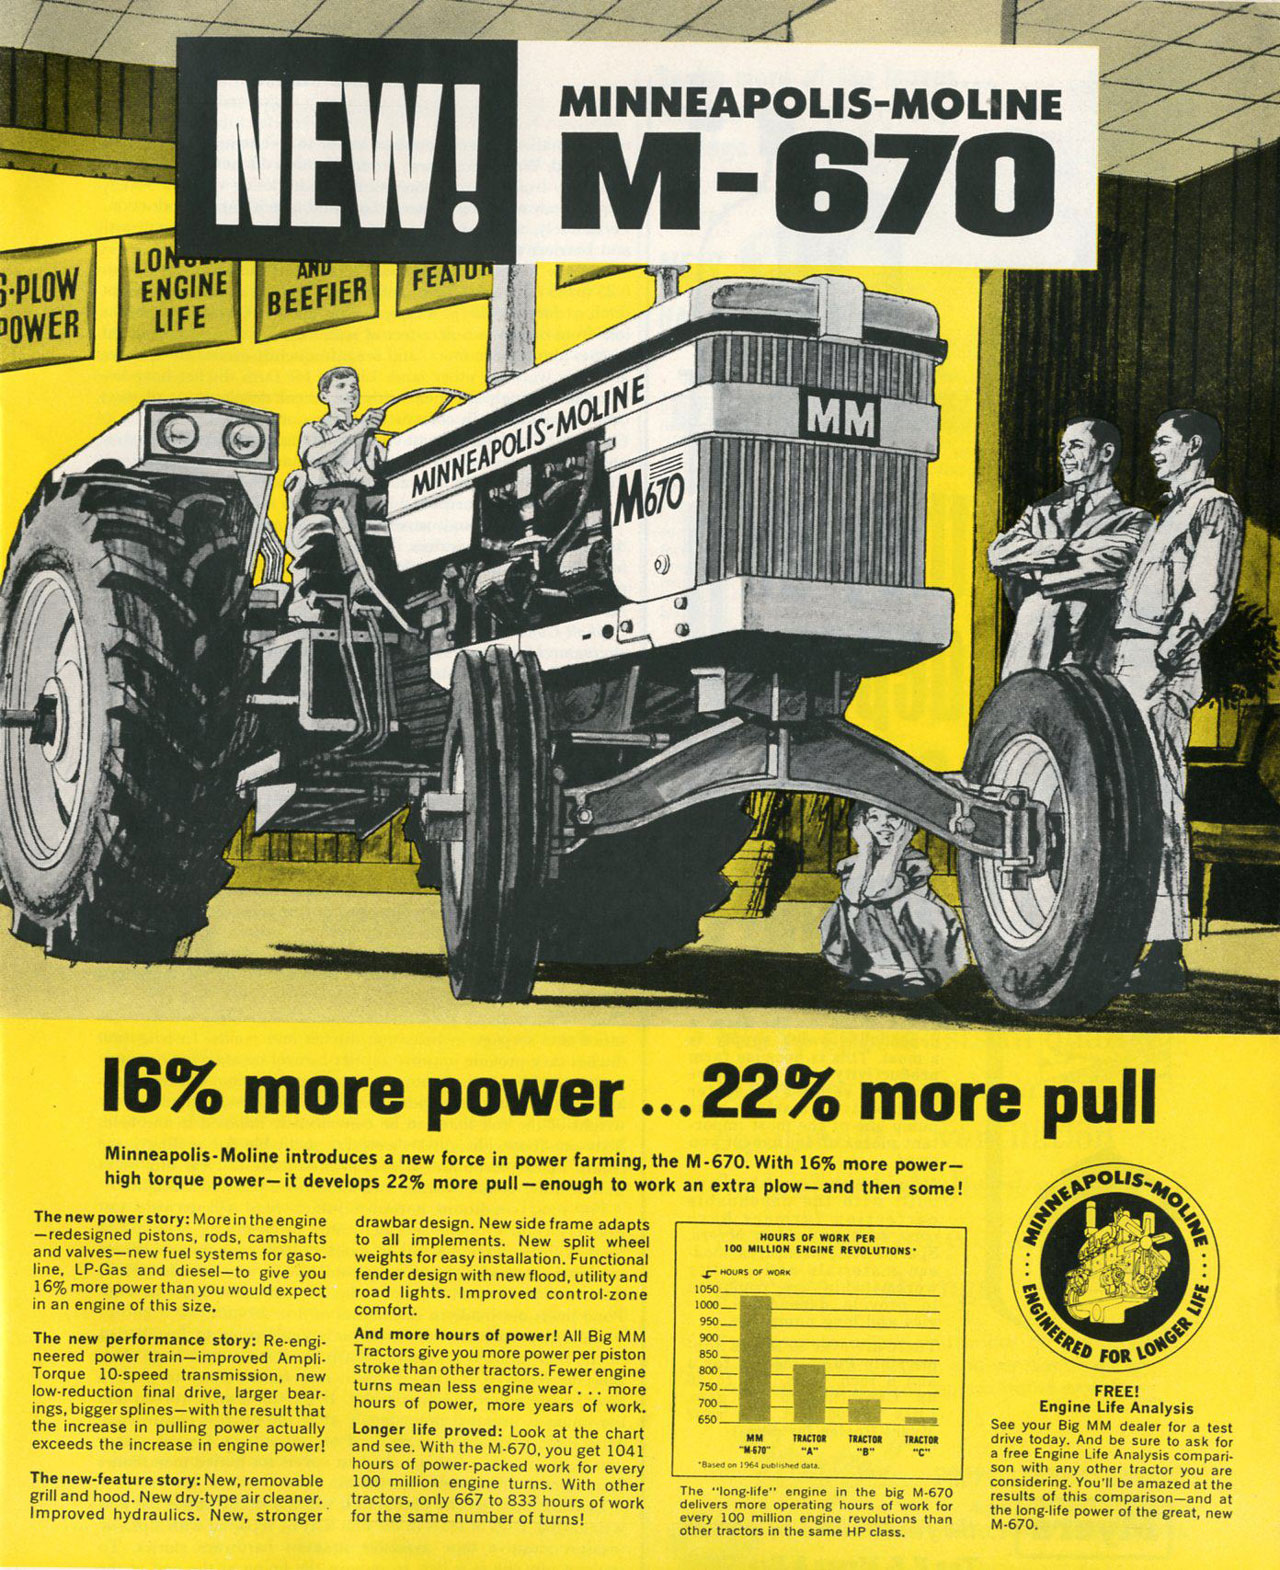 The new Minneapolis-Moline M-670. 16% more power... 22% more pull! Minneapolis-Moline introduces a new force in power farming, the M-670. With 16% more power—high torque power— it develops 22% more pull — enough to work an extra plow— and then some!  The new power story: More in the engine —redesigned pistons, rods, camshafts and valves—new fuel systems for gaso-line, LP•Gas and diesel—to give you 16% more power than you would expect in an engine of this size.  The new performance story: Re•engi-neered power train—improved Ampli• Torque 10-speed transmission, new low-reduction final drive, larger bear-ings, bigger splines—with the result that the increase in pulling power actually exceeds the increase in engine power!  The new-feature story: New, removable grill and hood. New dry-type air cleaner. Improved hydraulics. New, stronger  drawbar design. New side frame adapts to all implements. New split wheel weights for easy installation. Functional fender design with new flood, utility and road lights. Improved control-zone comfort. And more hours of power! All Big MM Tractors give you more power per piston stroke than other tractors. Fewer engine turns mean less engine wear ... more hours of power, more years of work. Longer life proved: Look at the chart and see. With the M-670, you get 1041 hours of power-packed work for every 100 million engine turns. With other tractors, only 667 to 833 hours of work for the same number of turns!   i engine in the big M.670. The -,Ong.' more re operating hours of work fordeveehryveris0.°rnillion engine revolutions other tractors in the same HP class.  FREE! Engine Life Analysis See your Big MM dealer for a test drive today. And be sure to ask for a free Engine Life Analysis compari-son with any other tractor you are considering. You'll be amazed at the results of this comparison—and at the long-life power of the great, new M•670.